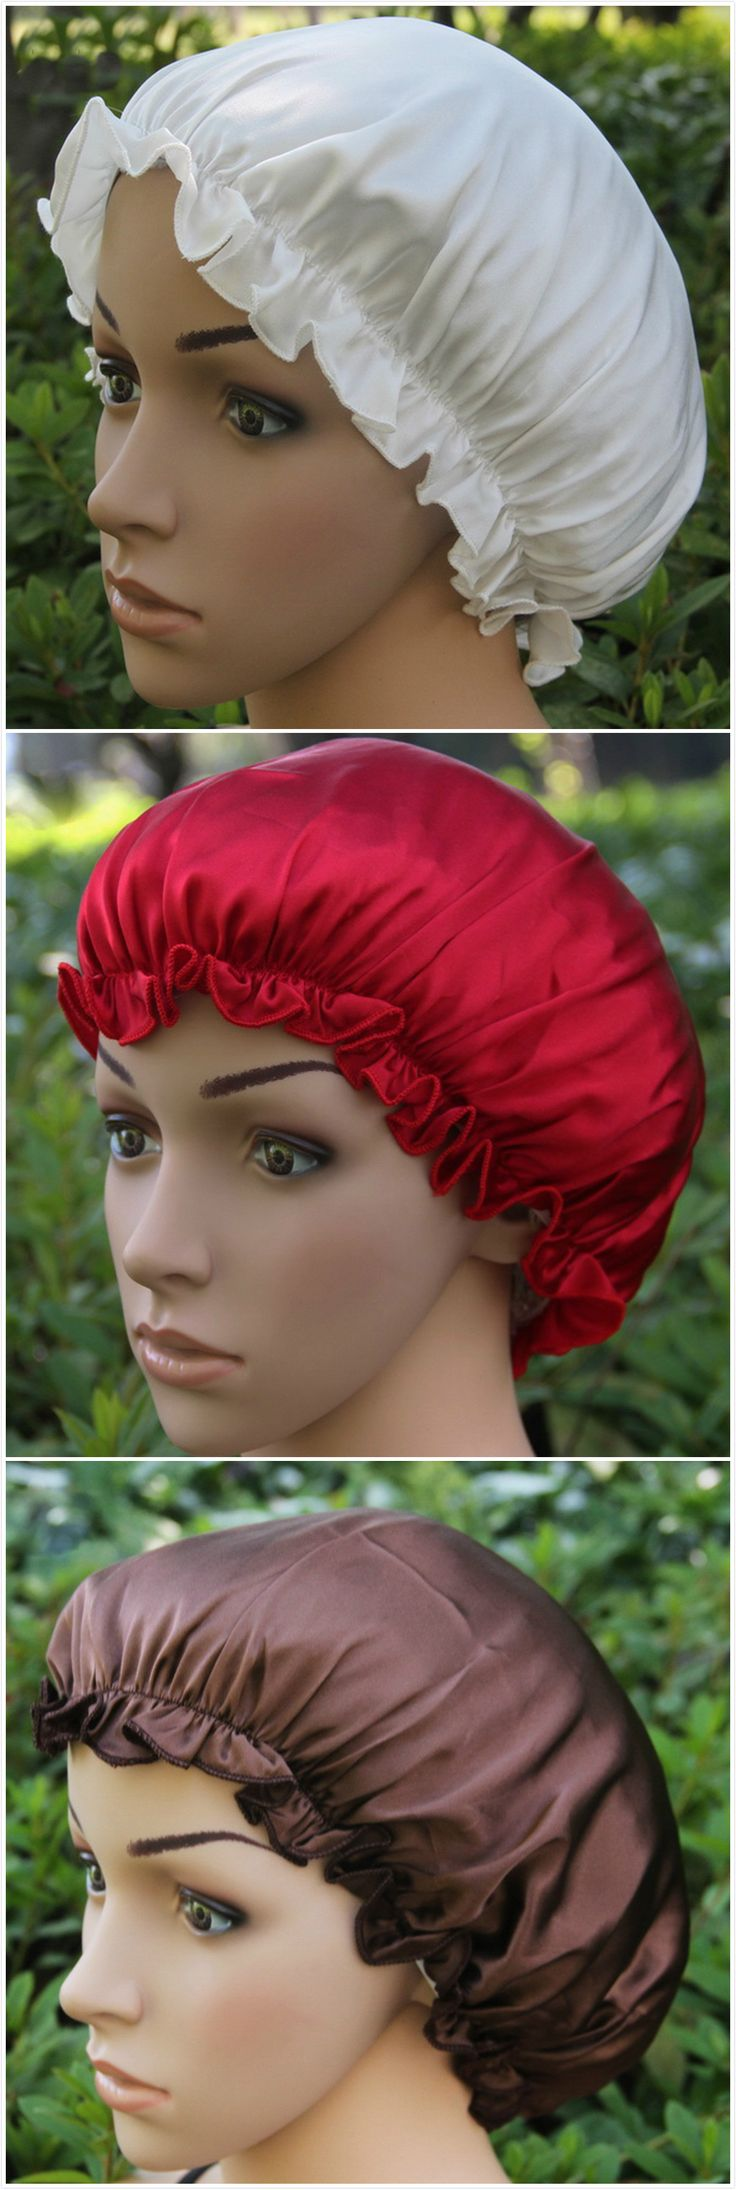 The sleeping cap is made from 100% mulberry silk with solid color, elastic band. It can keep hair in place and helps to prevent breakage during sleep.